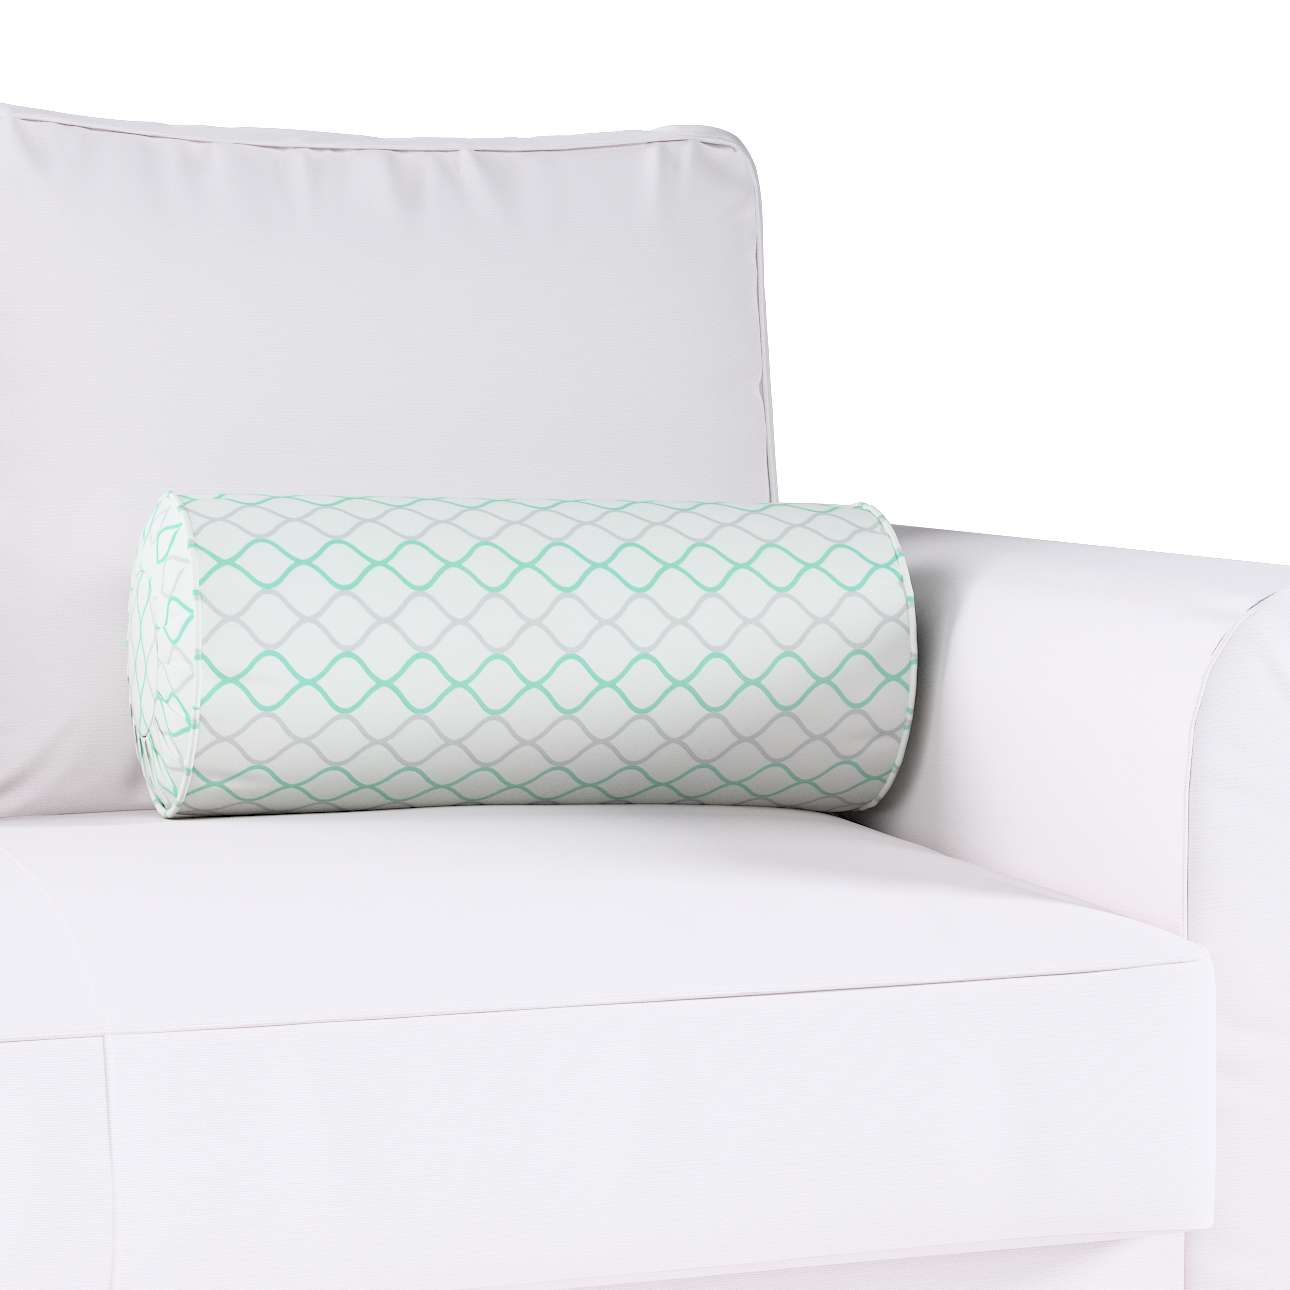 Bolster cushion with pleats in collection Geometric, fabric: 141-47